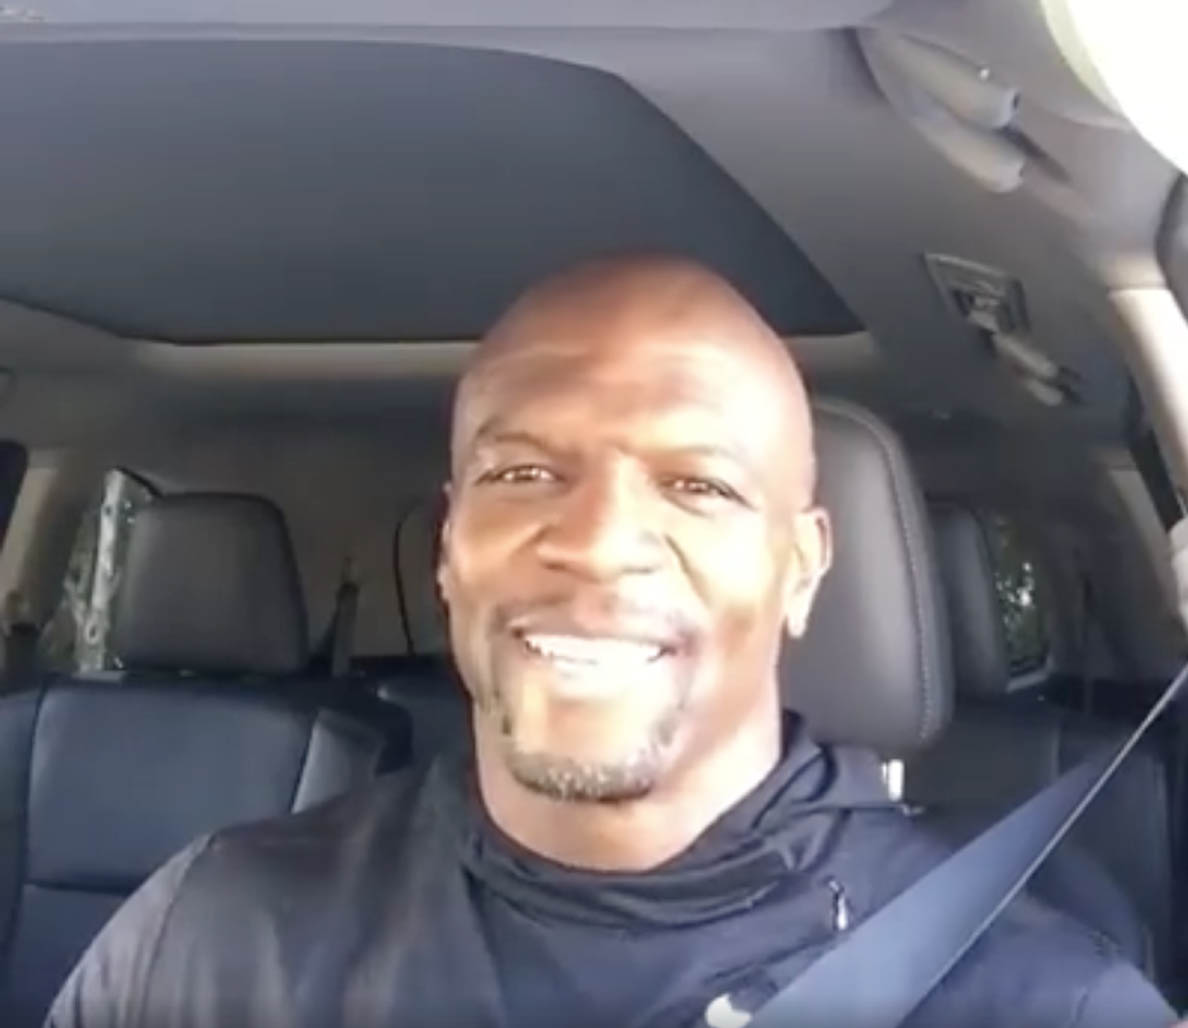 How Terry Crews Battled and Eventually Overcame His Pornography Addiction